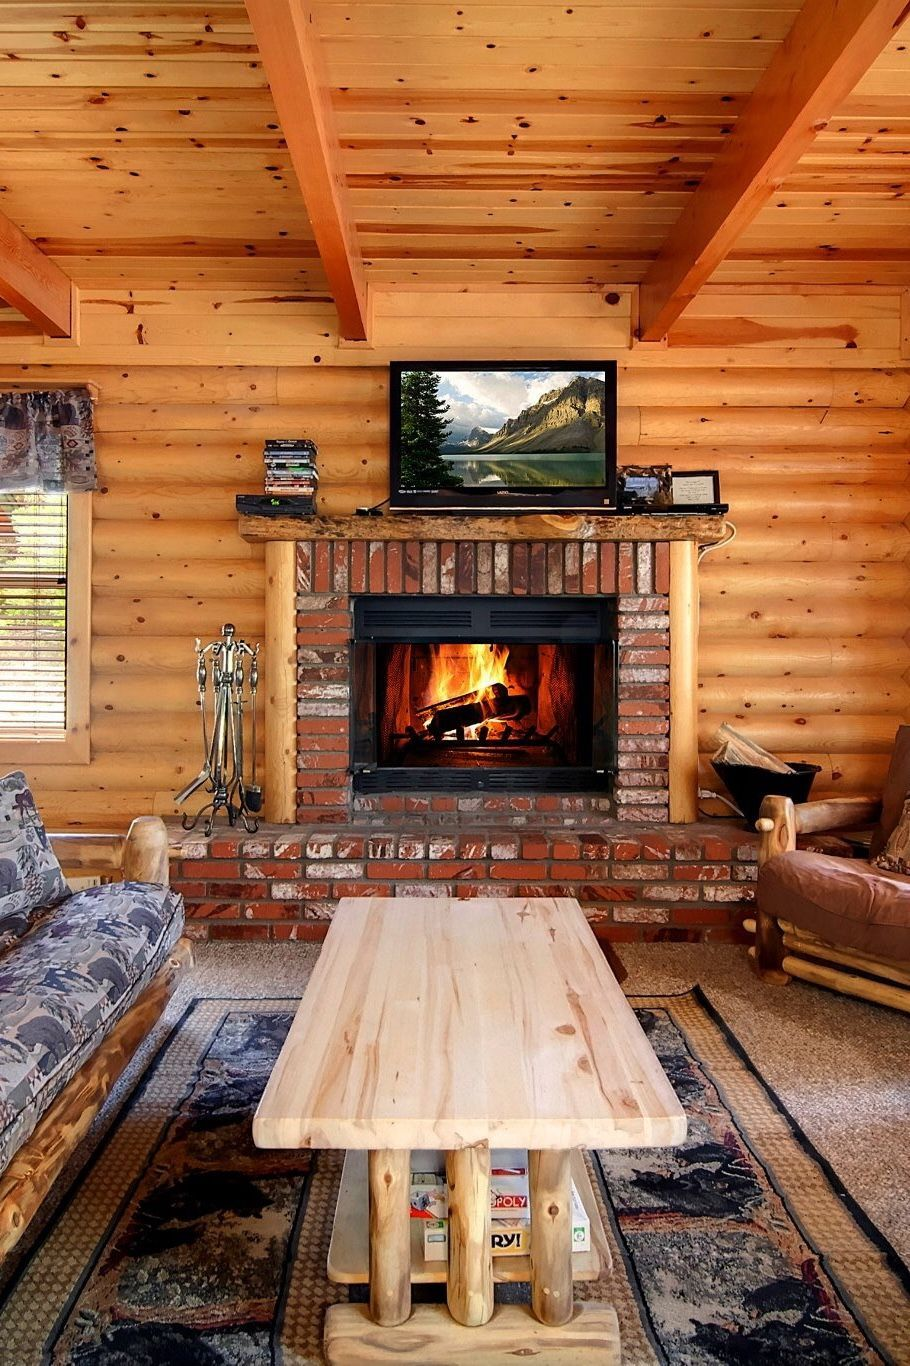 Log cabin coziness in the beautiful mountain resort